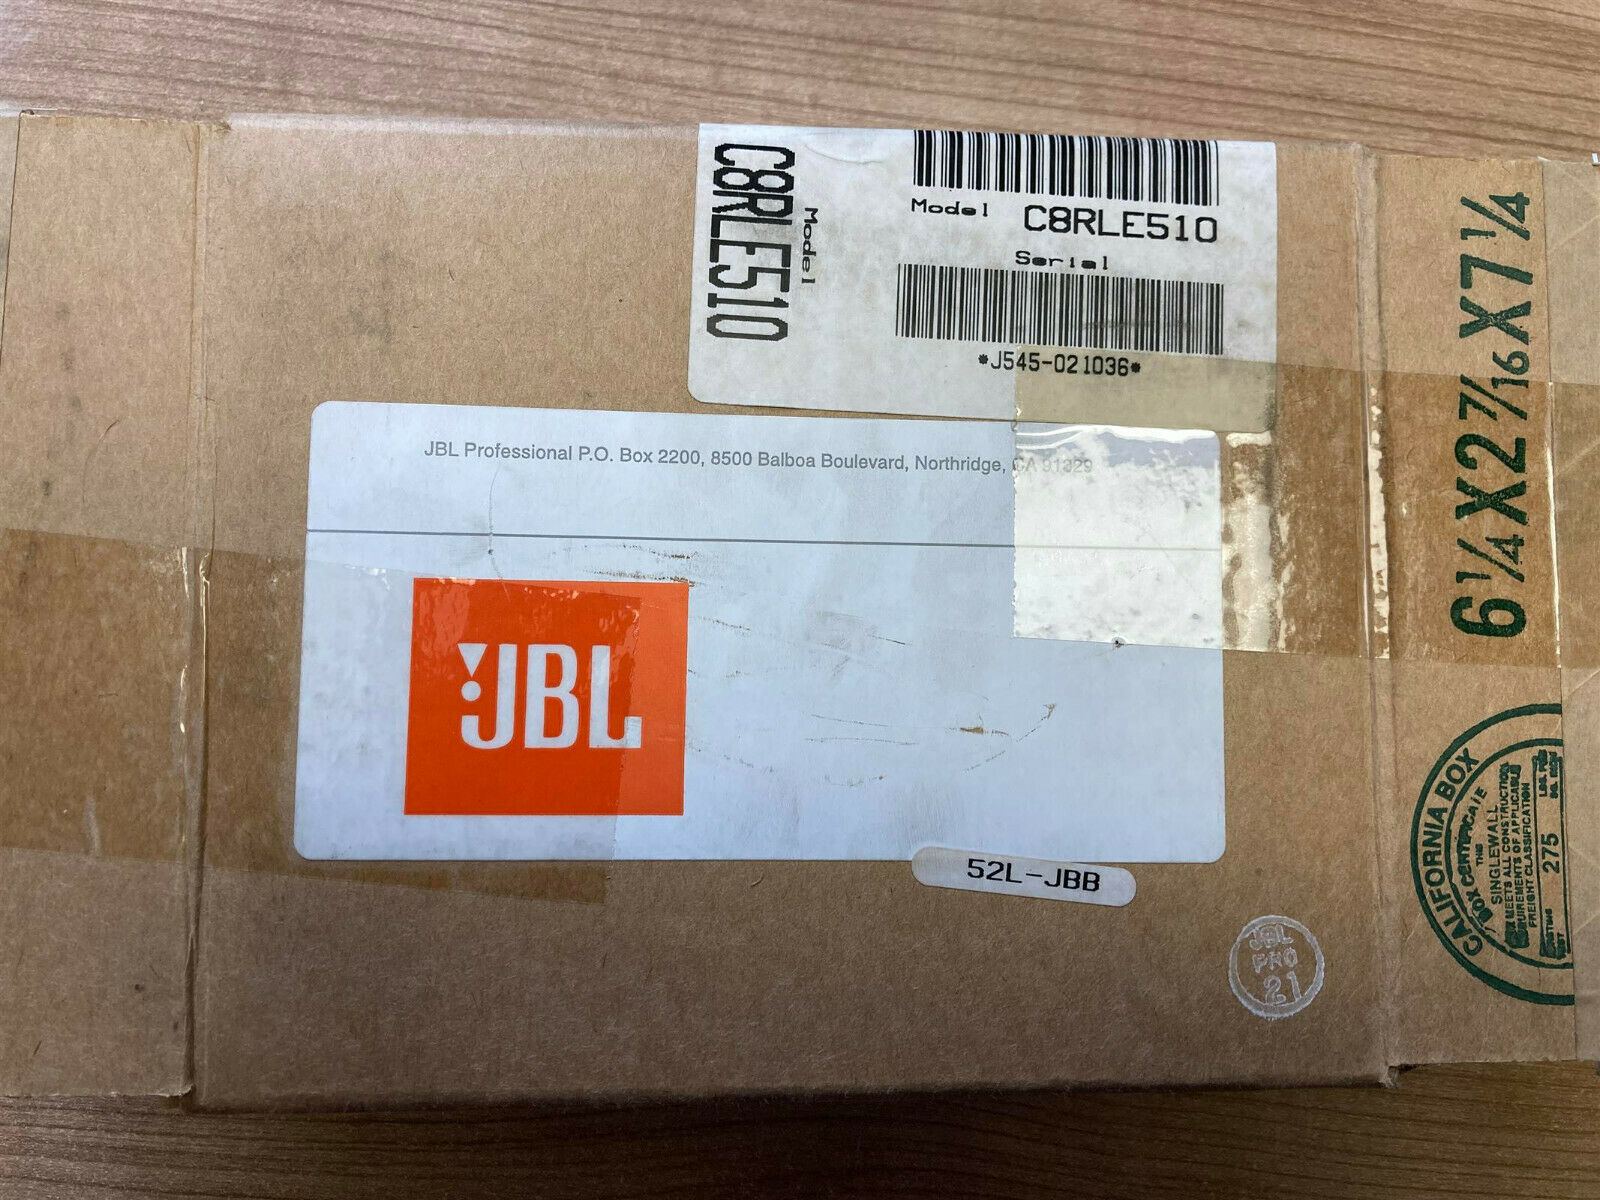 JBL Recone Kit C8RLE510 for LE5